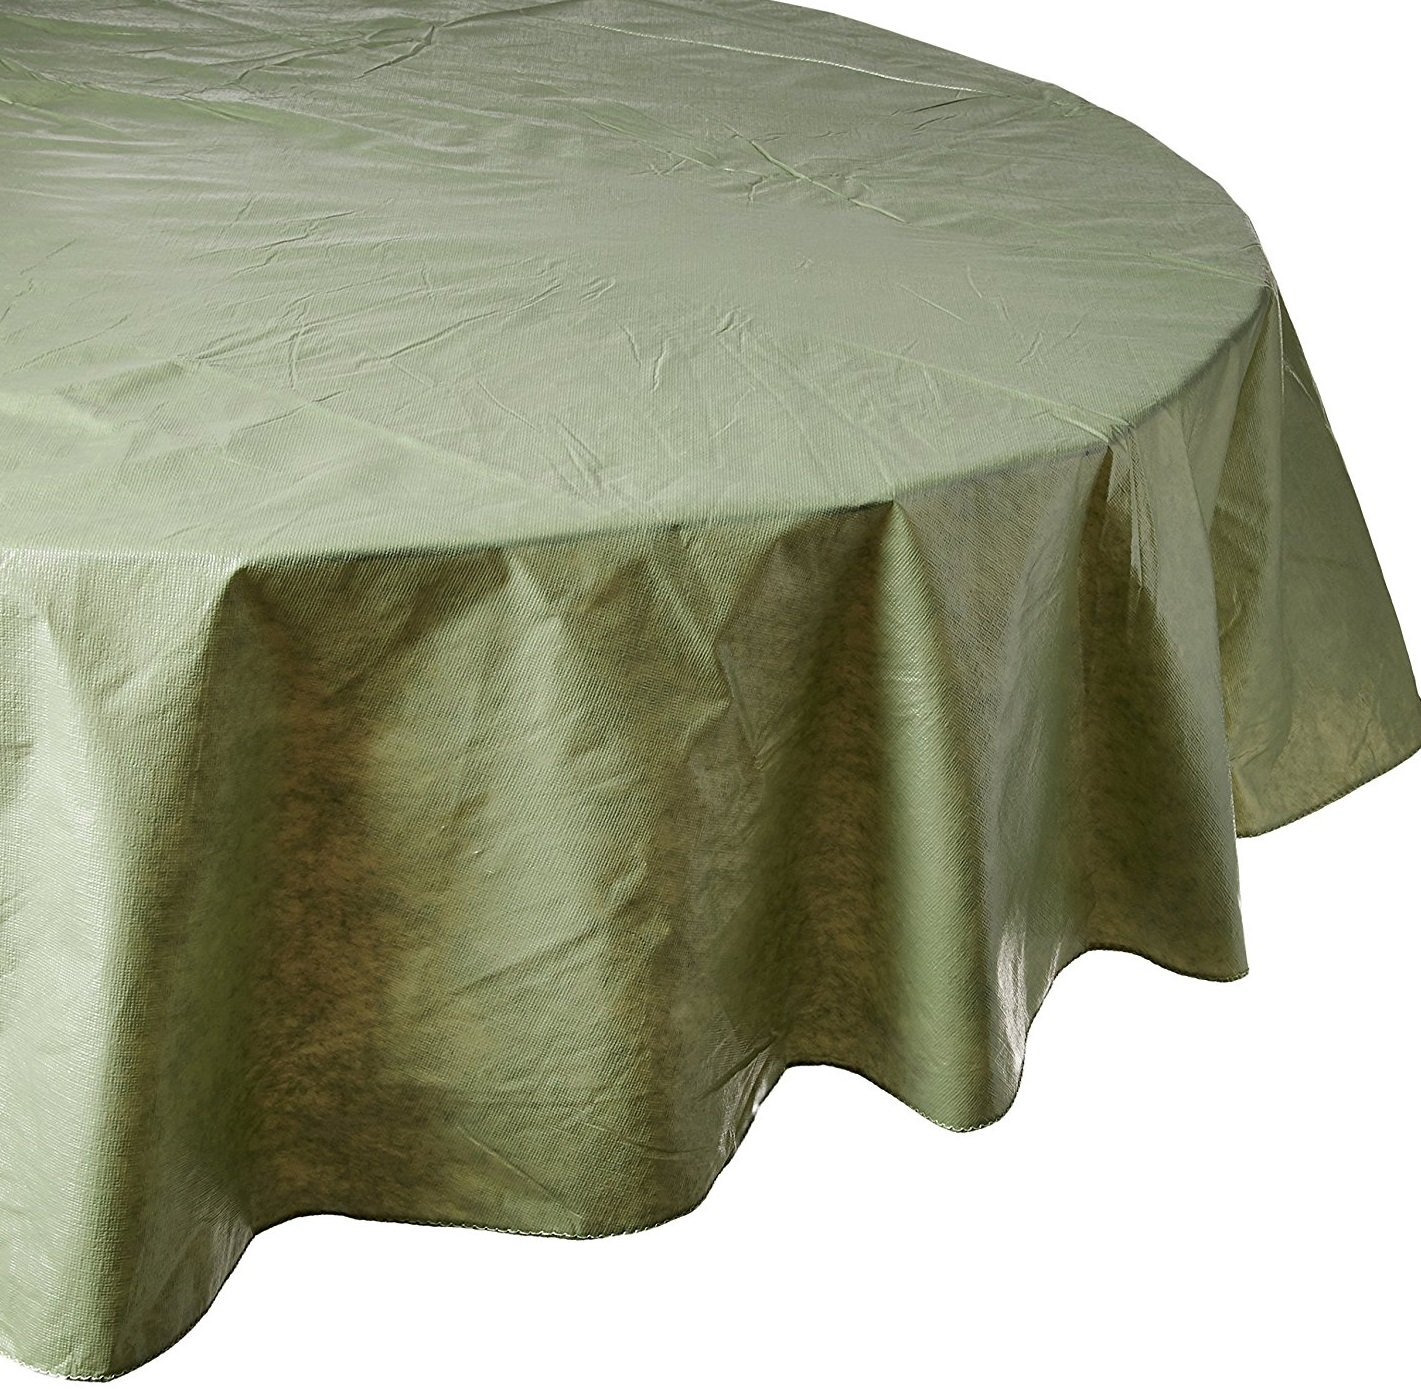 Beau Royal Bath Solid Color Vinyl Tablecloth With Polyester Flannel Backing,  Size 70 Round   Walmart.com